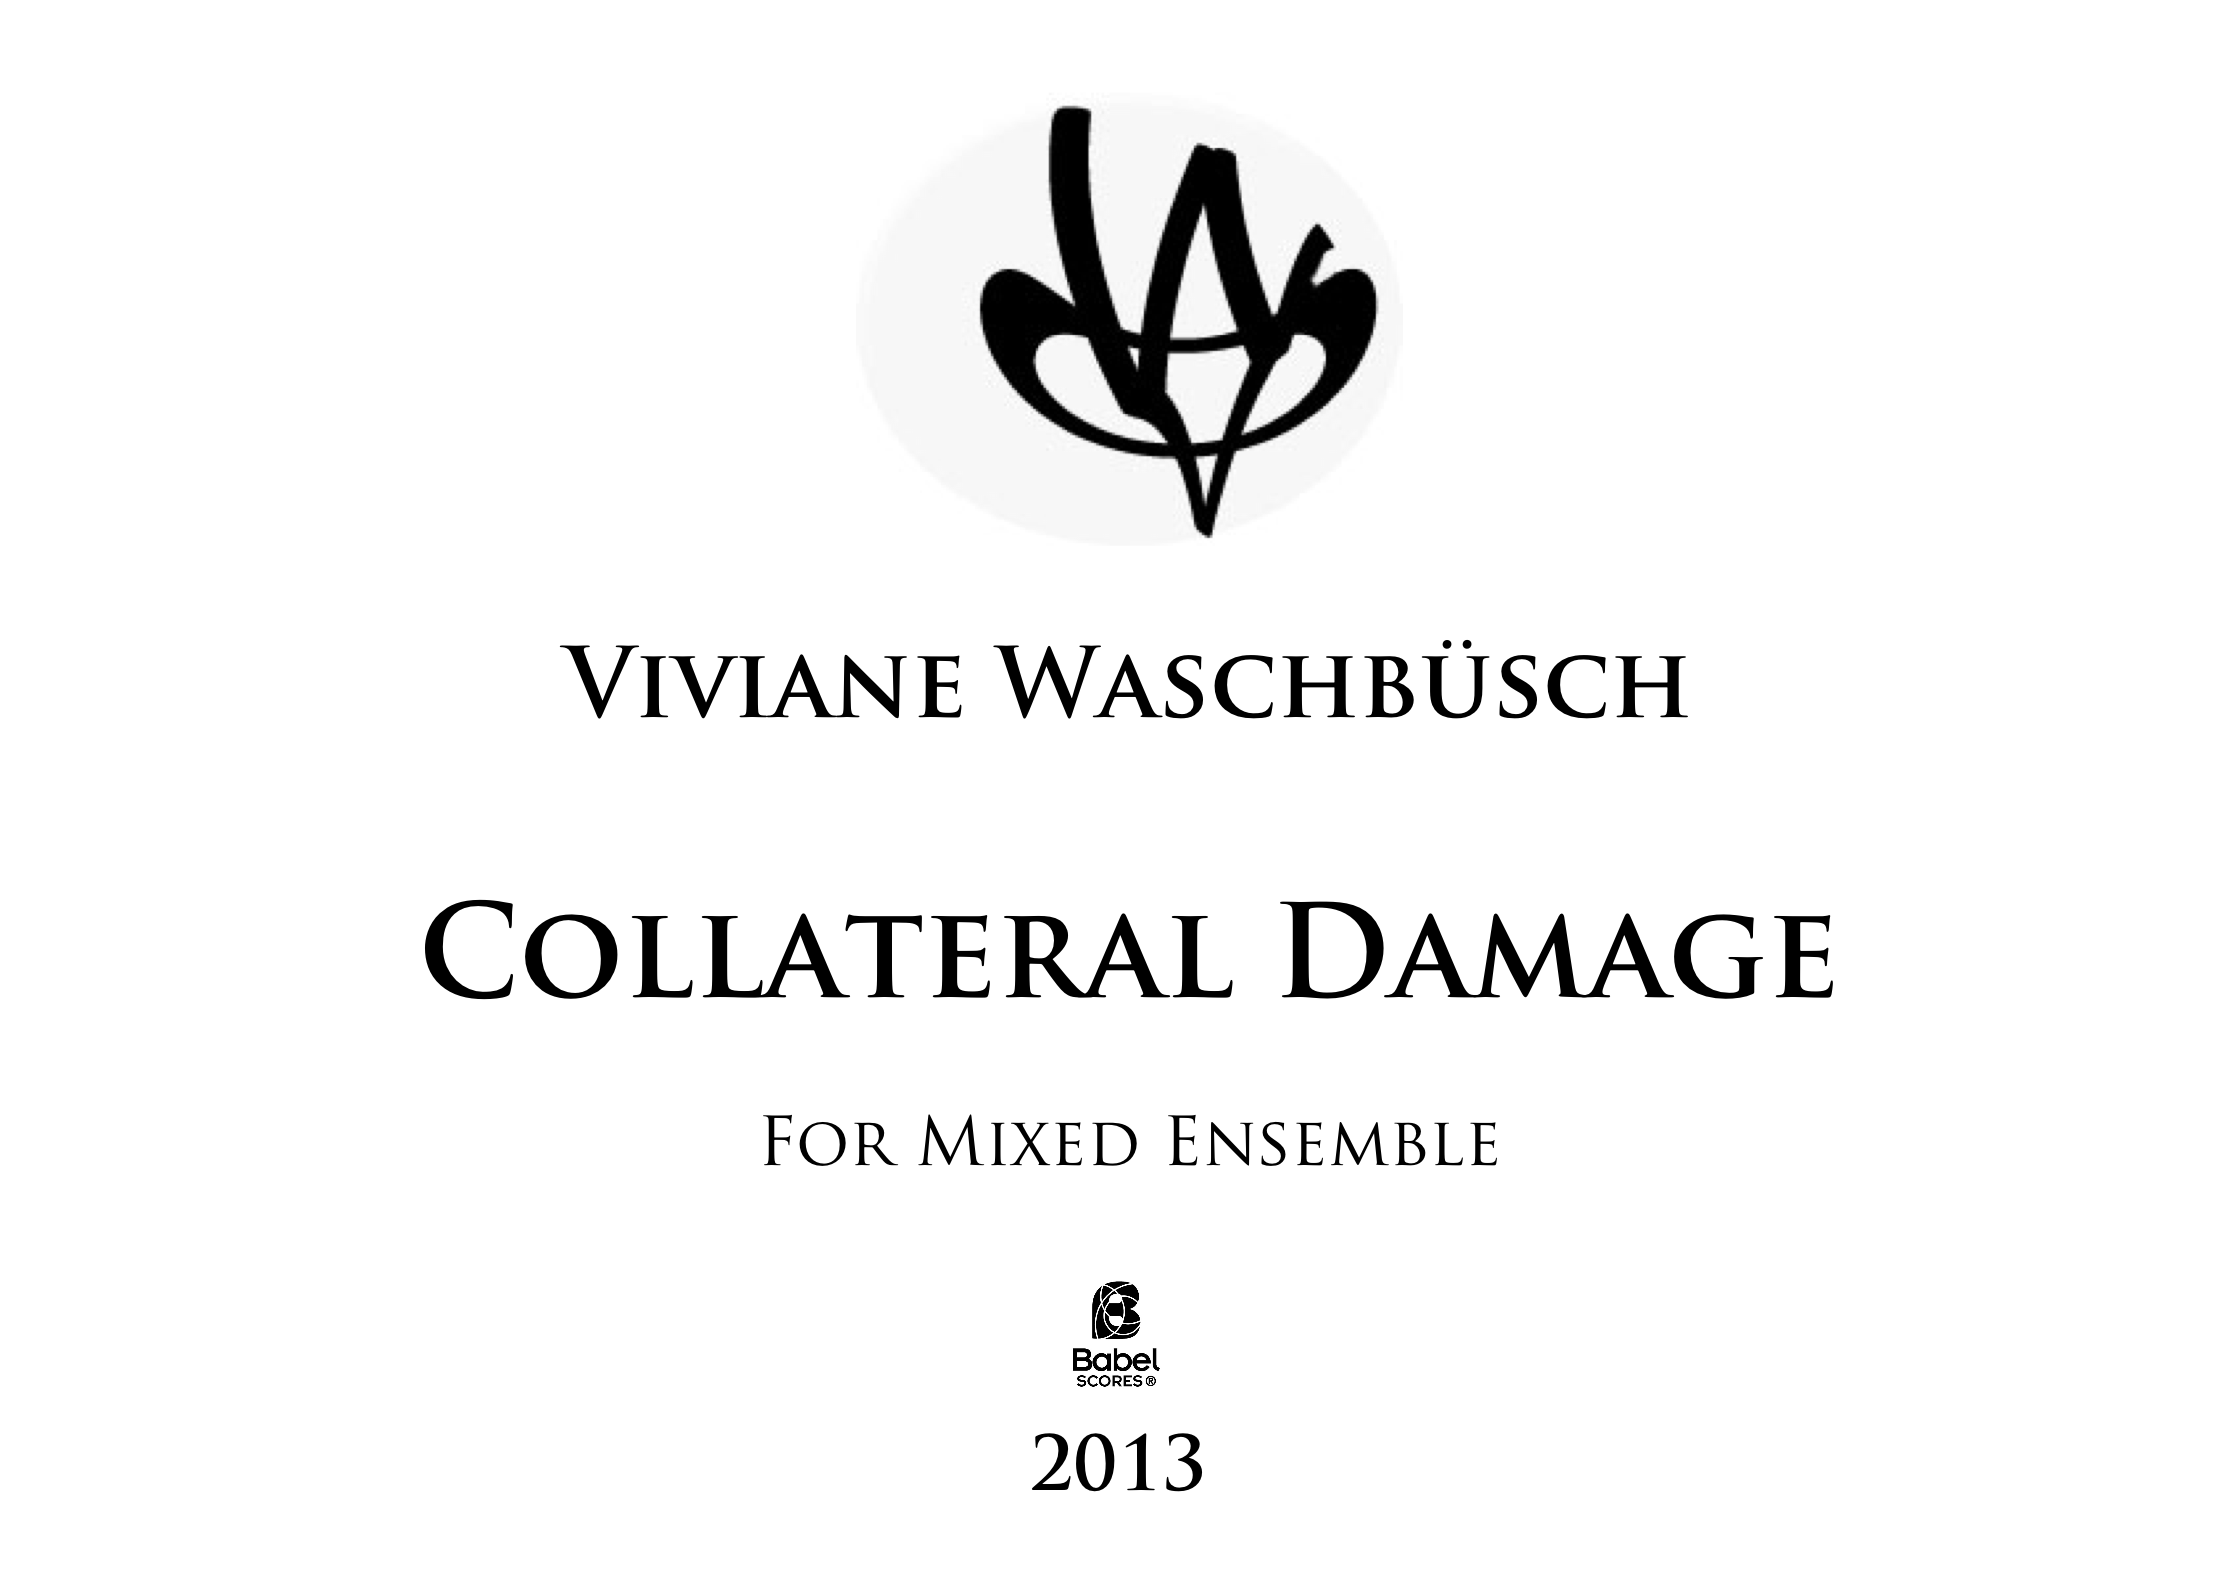 collateral damage A4 z